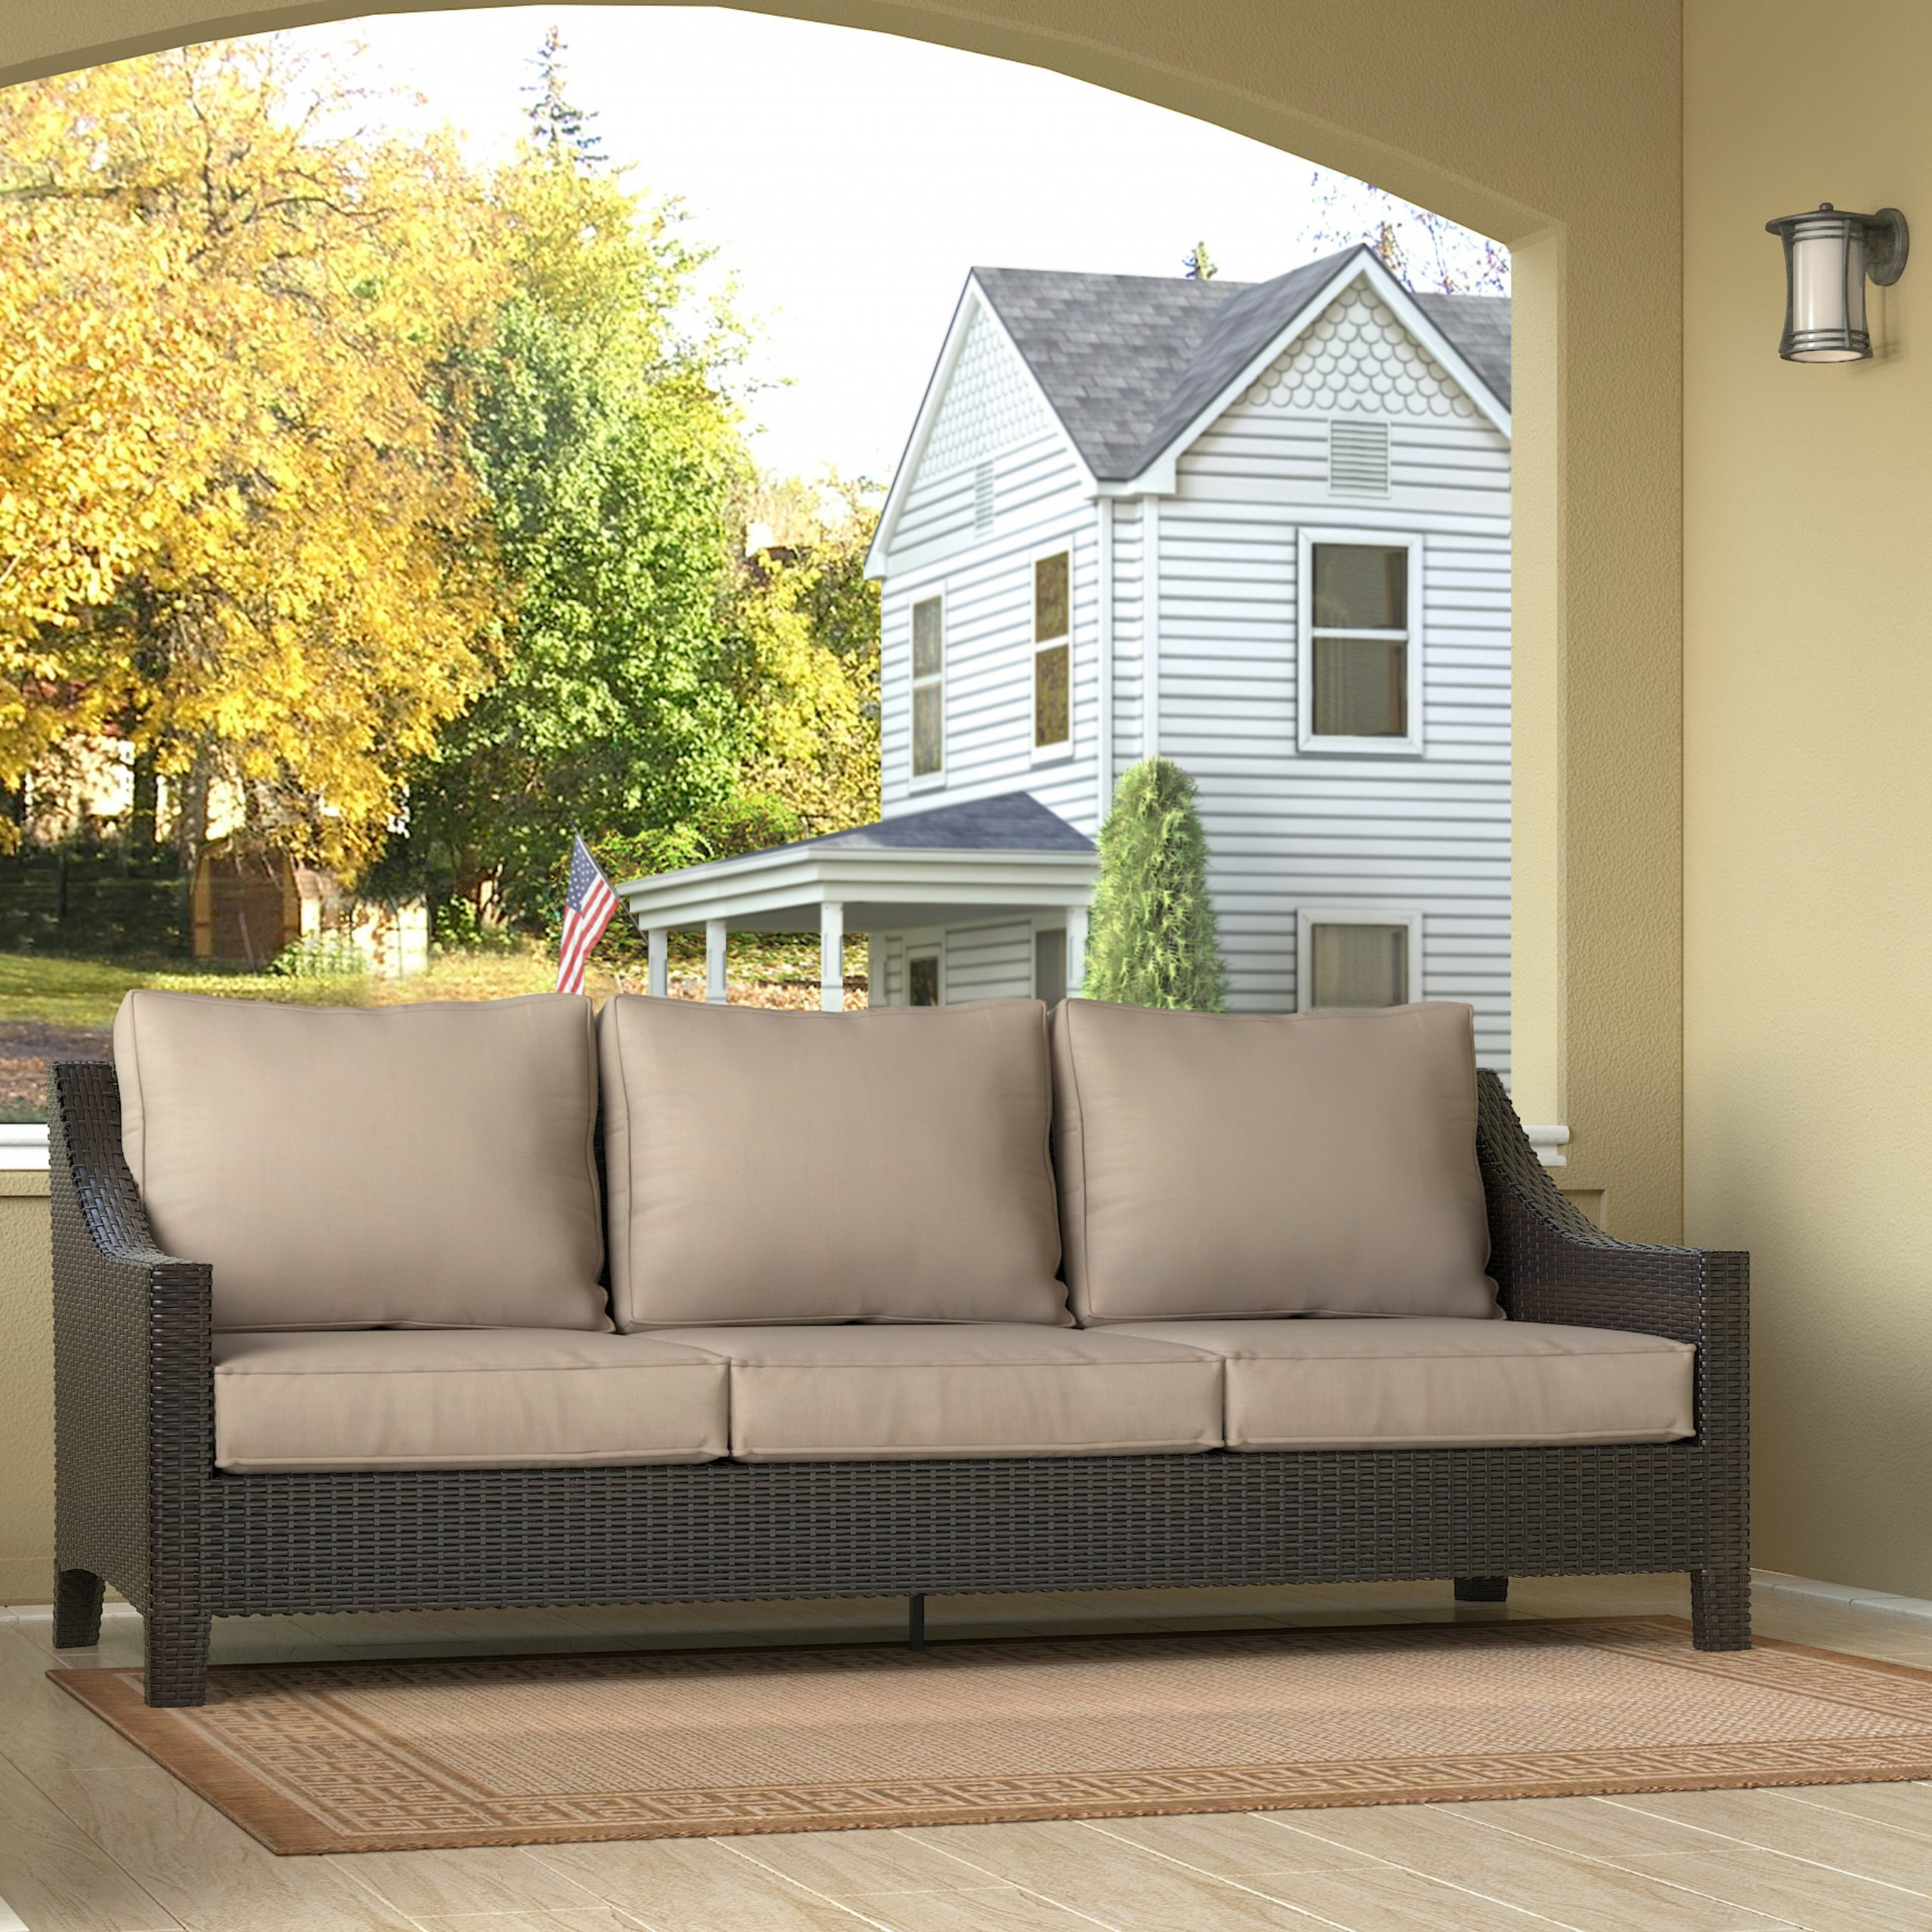 Well Known Astrid Wicker Patio Sofas With Cushions Pertaining To Tahoe Outdoor Wicker Patio Sofa With Cushions (View 8 of 25)